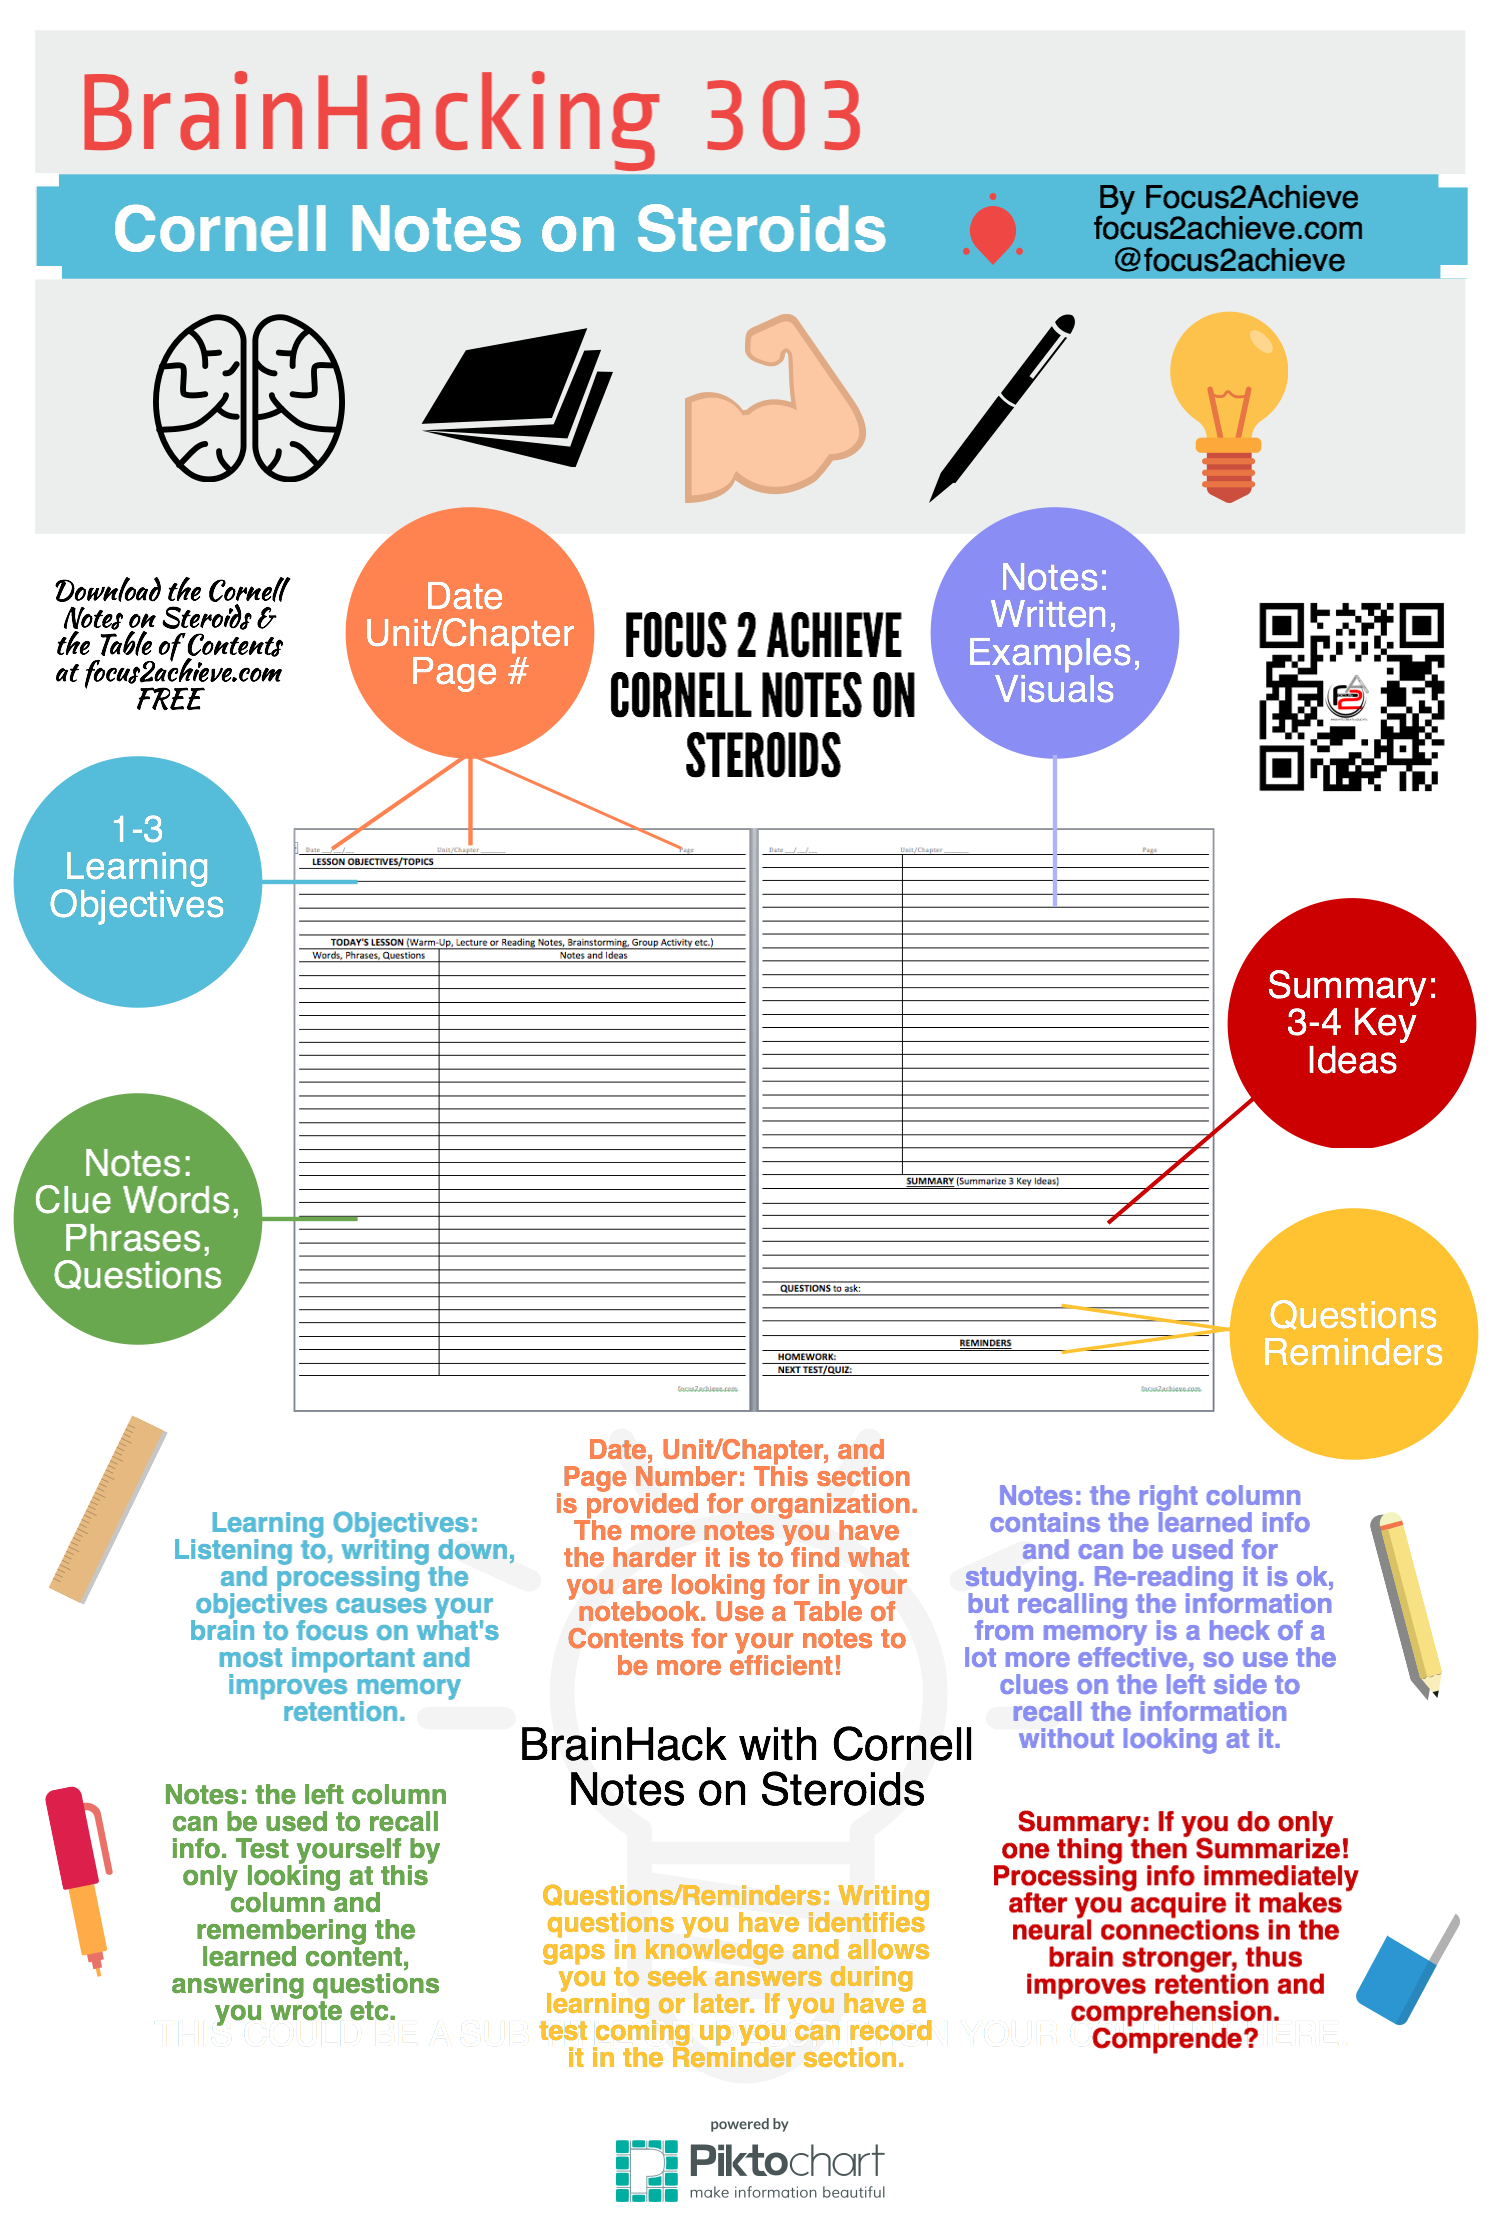 Cornell Notes On Steroids Infographic